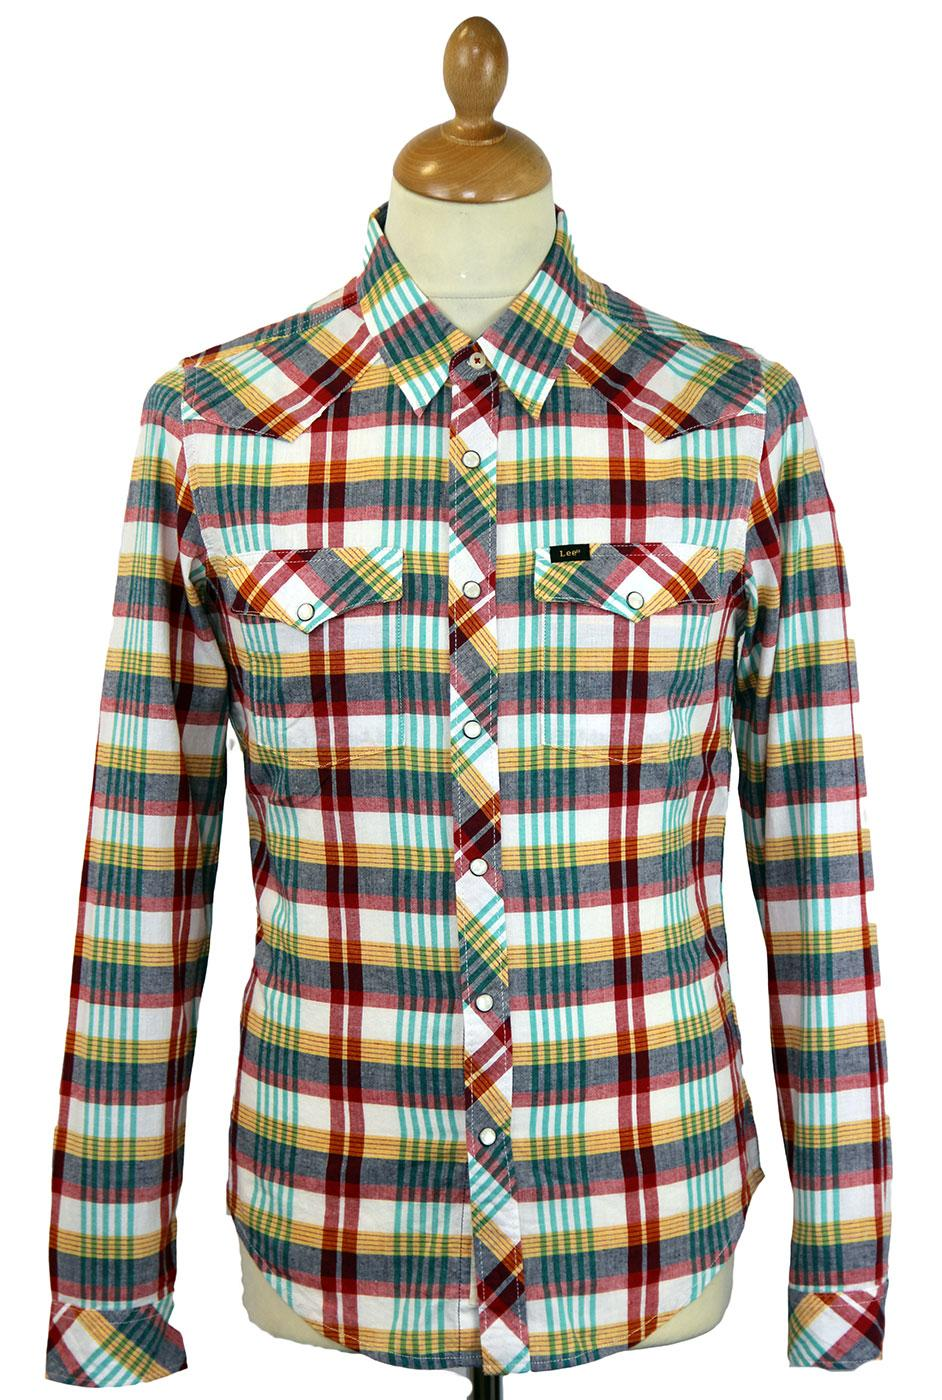 LEE JEANS Retro Mod Western Check Shirt (Lava Red)